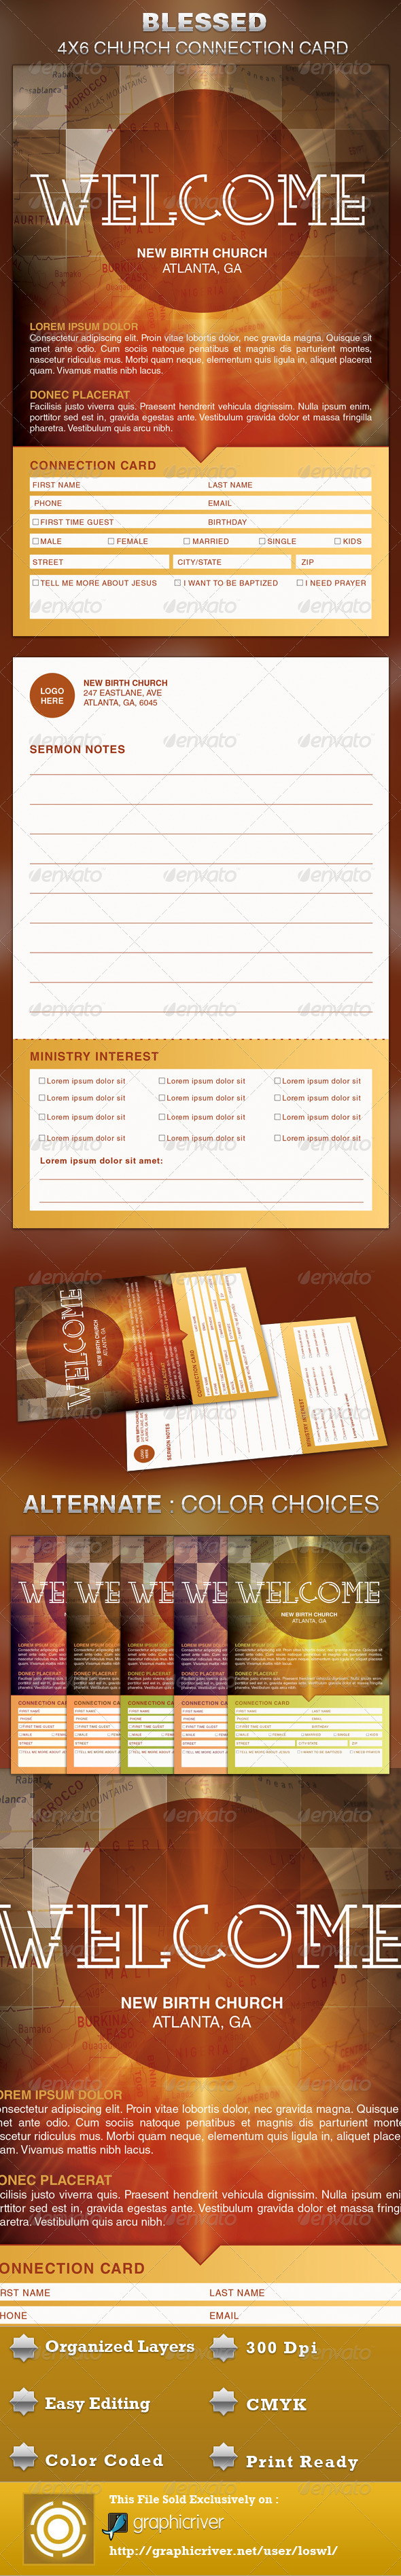 Blessed Church Connection Card Template  Card Templates